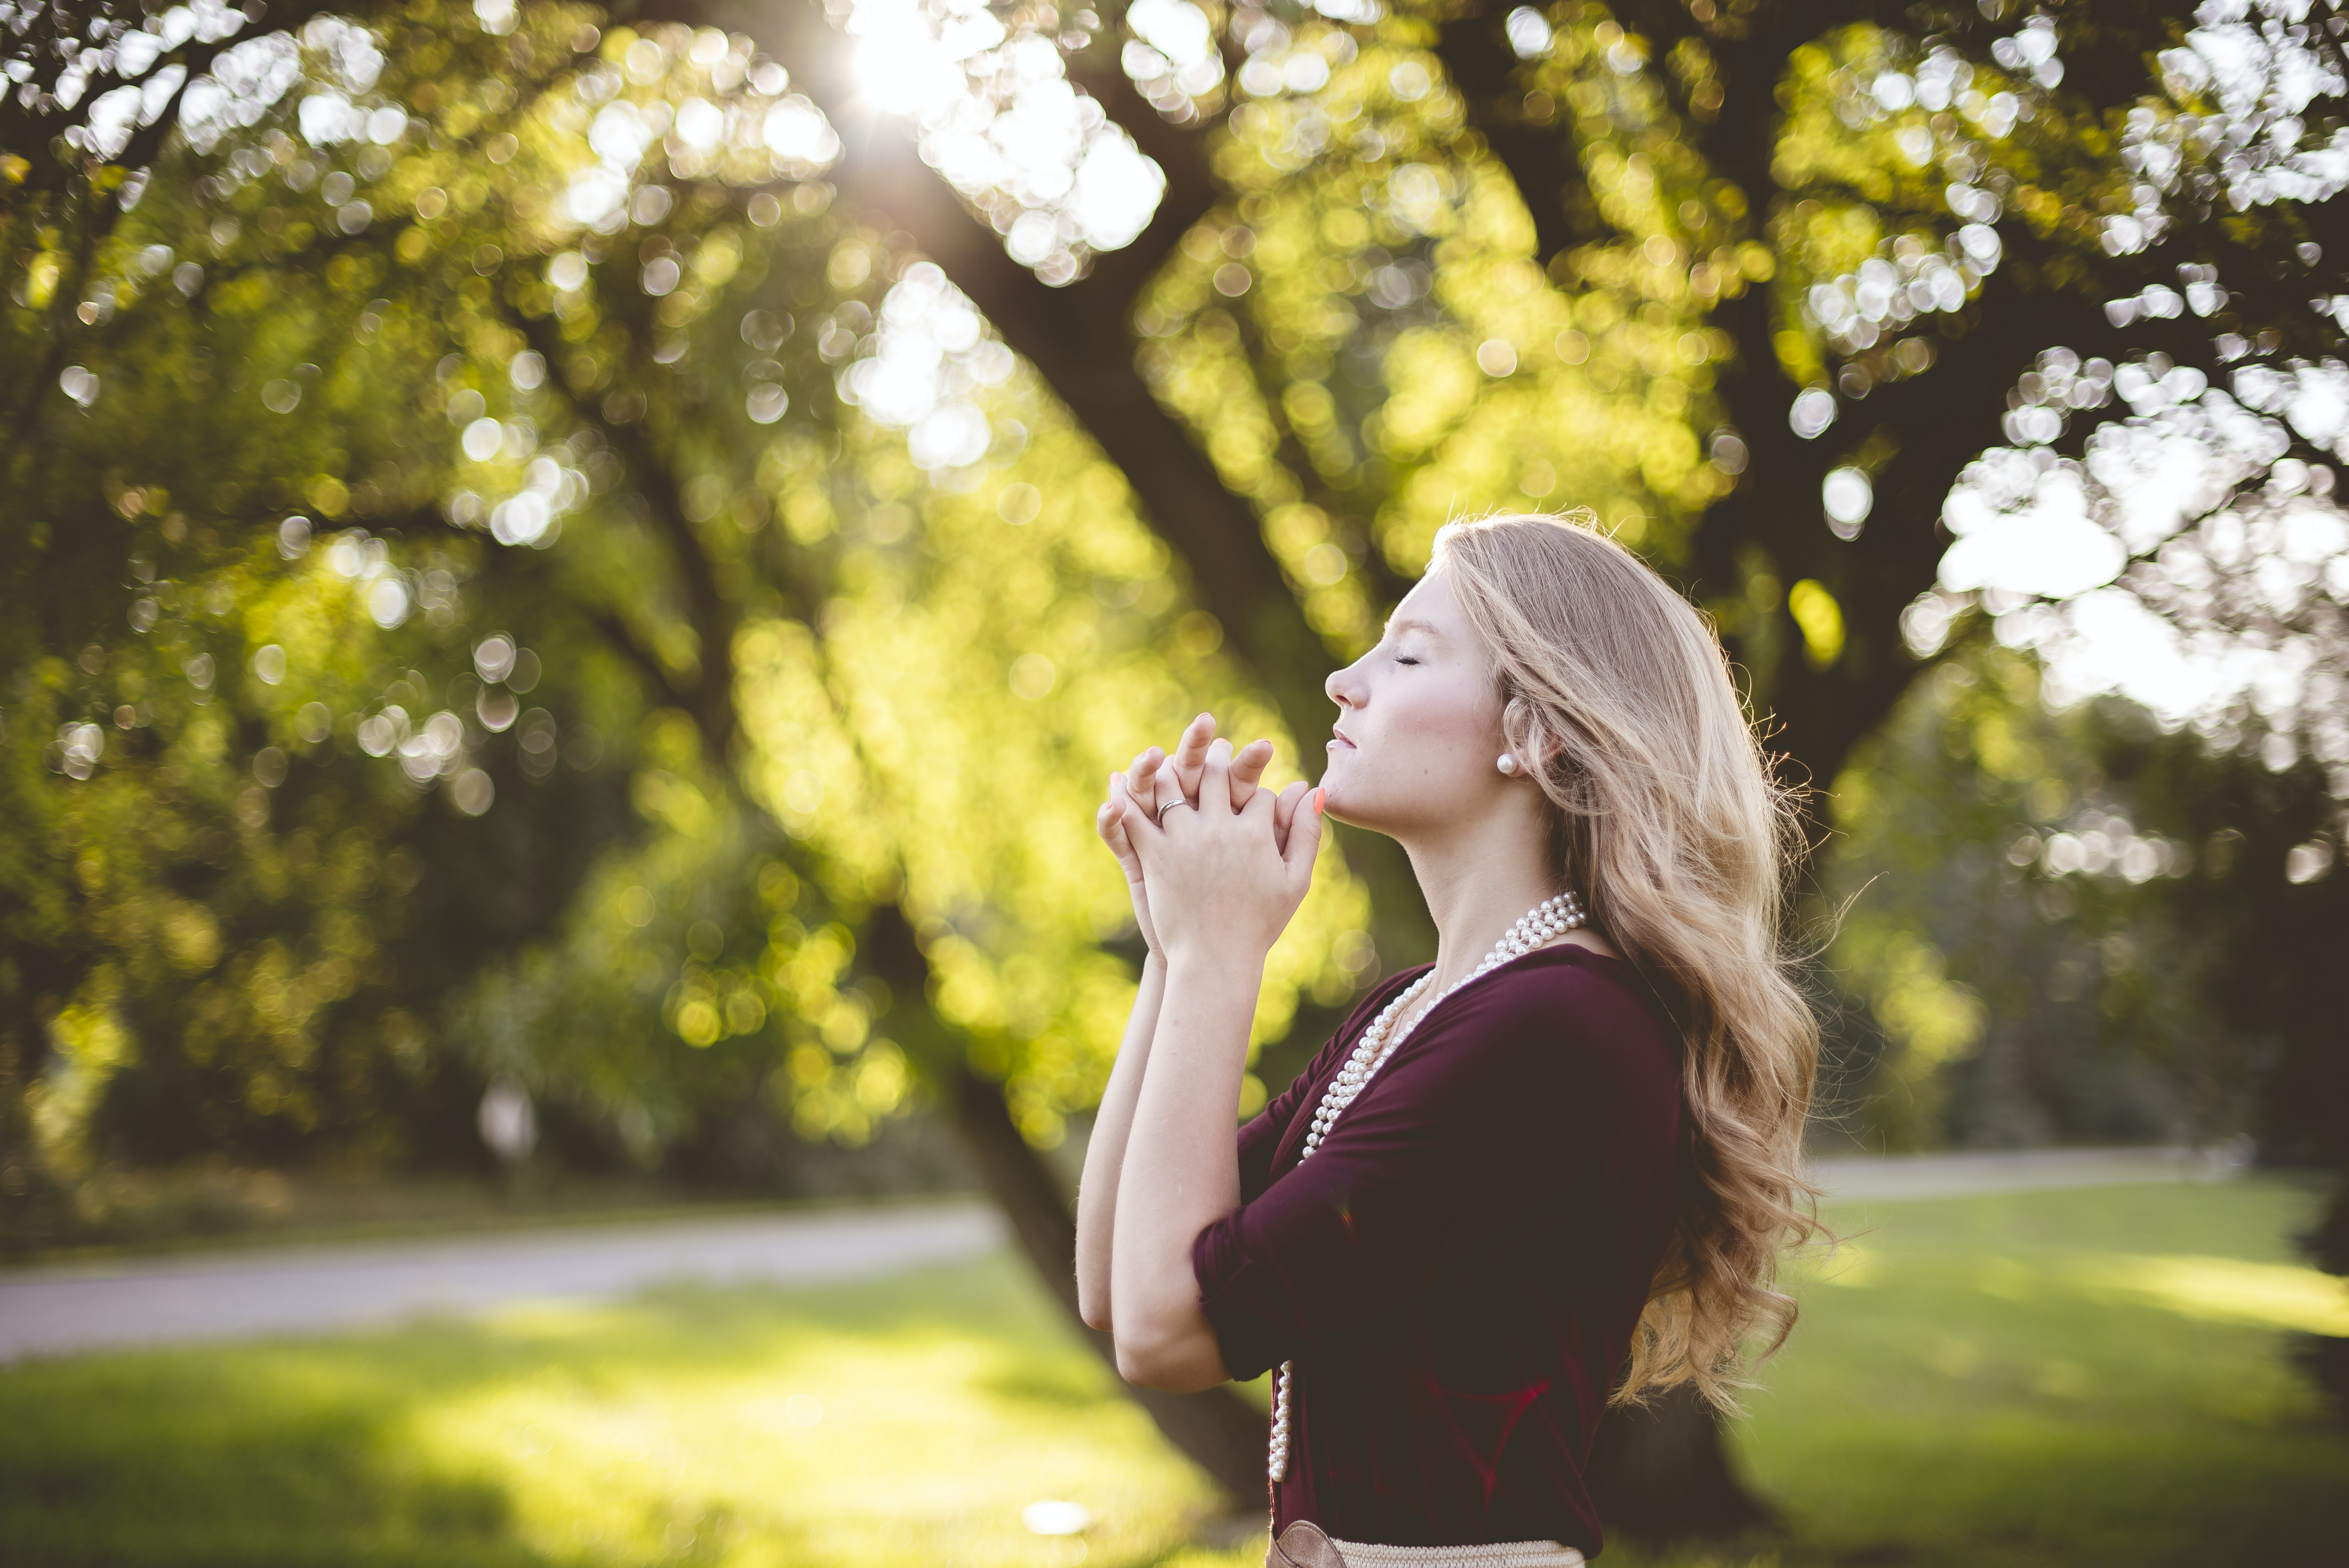 A young blonde woman putting her hands together in a gesture of prayer in a park